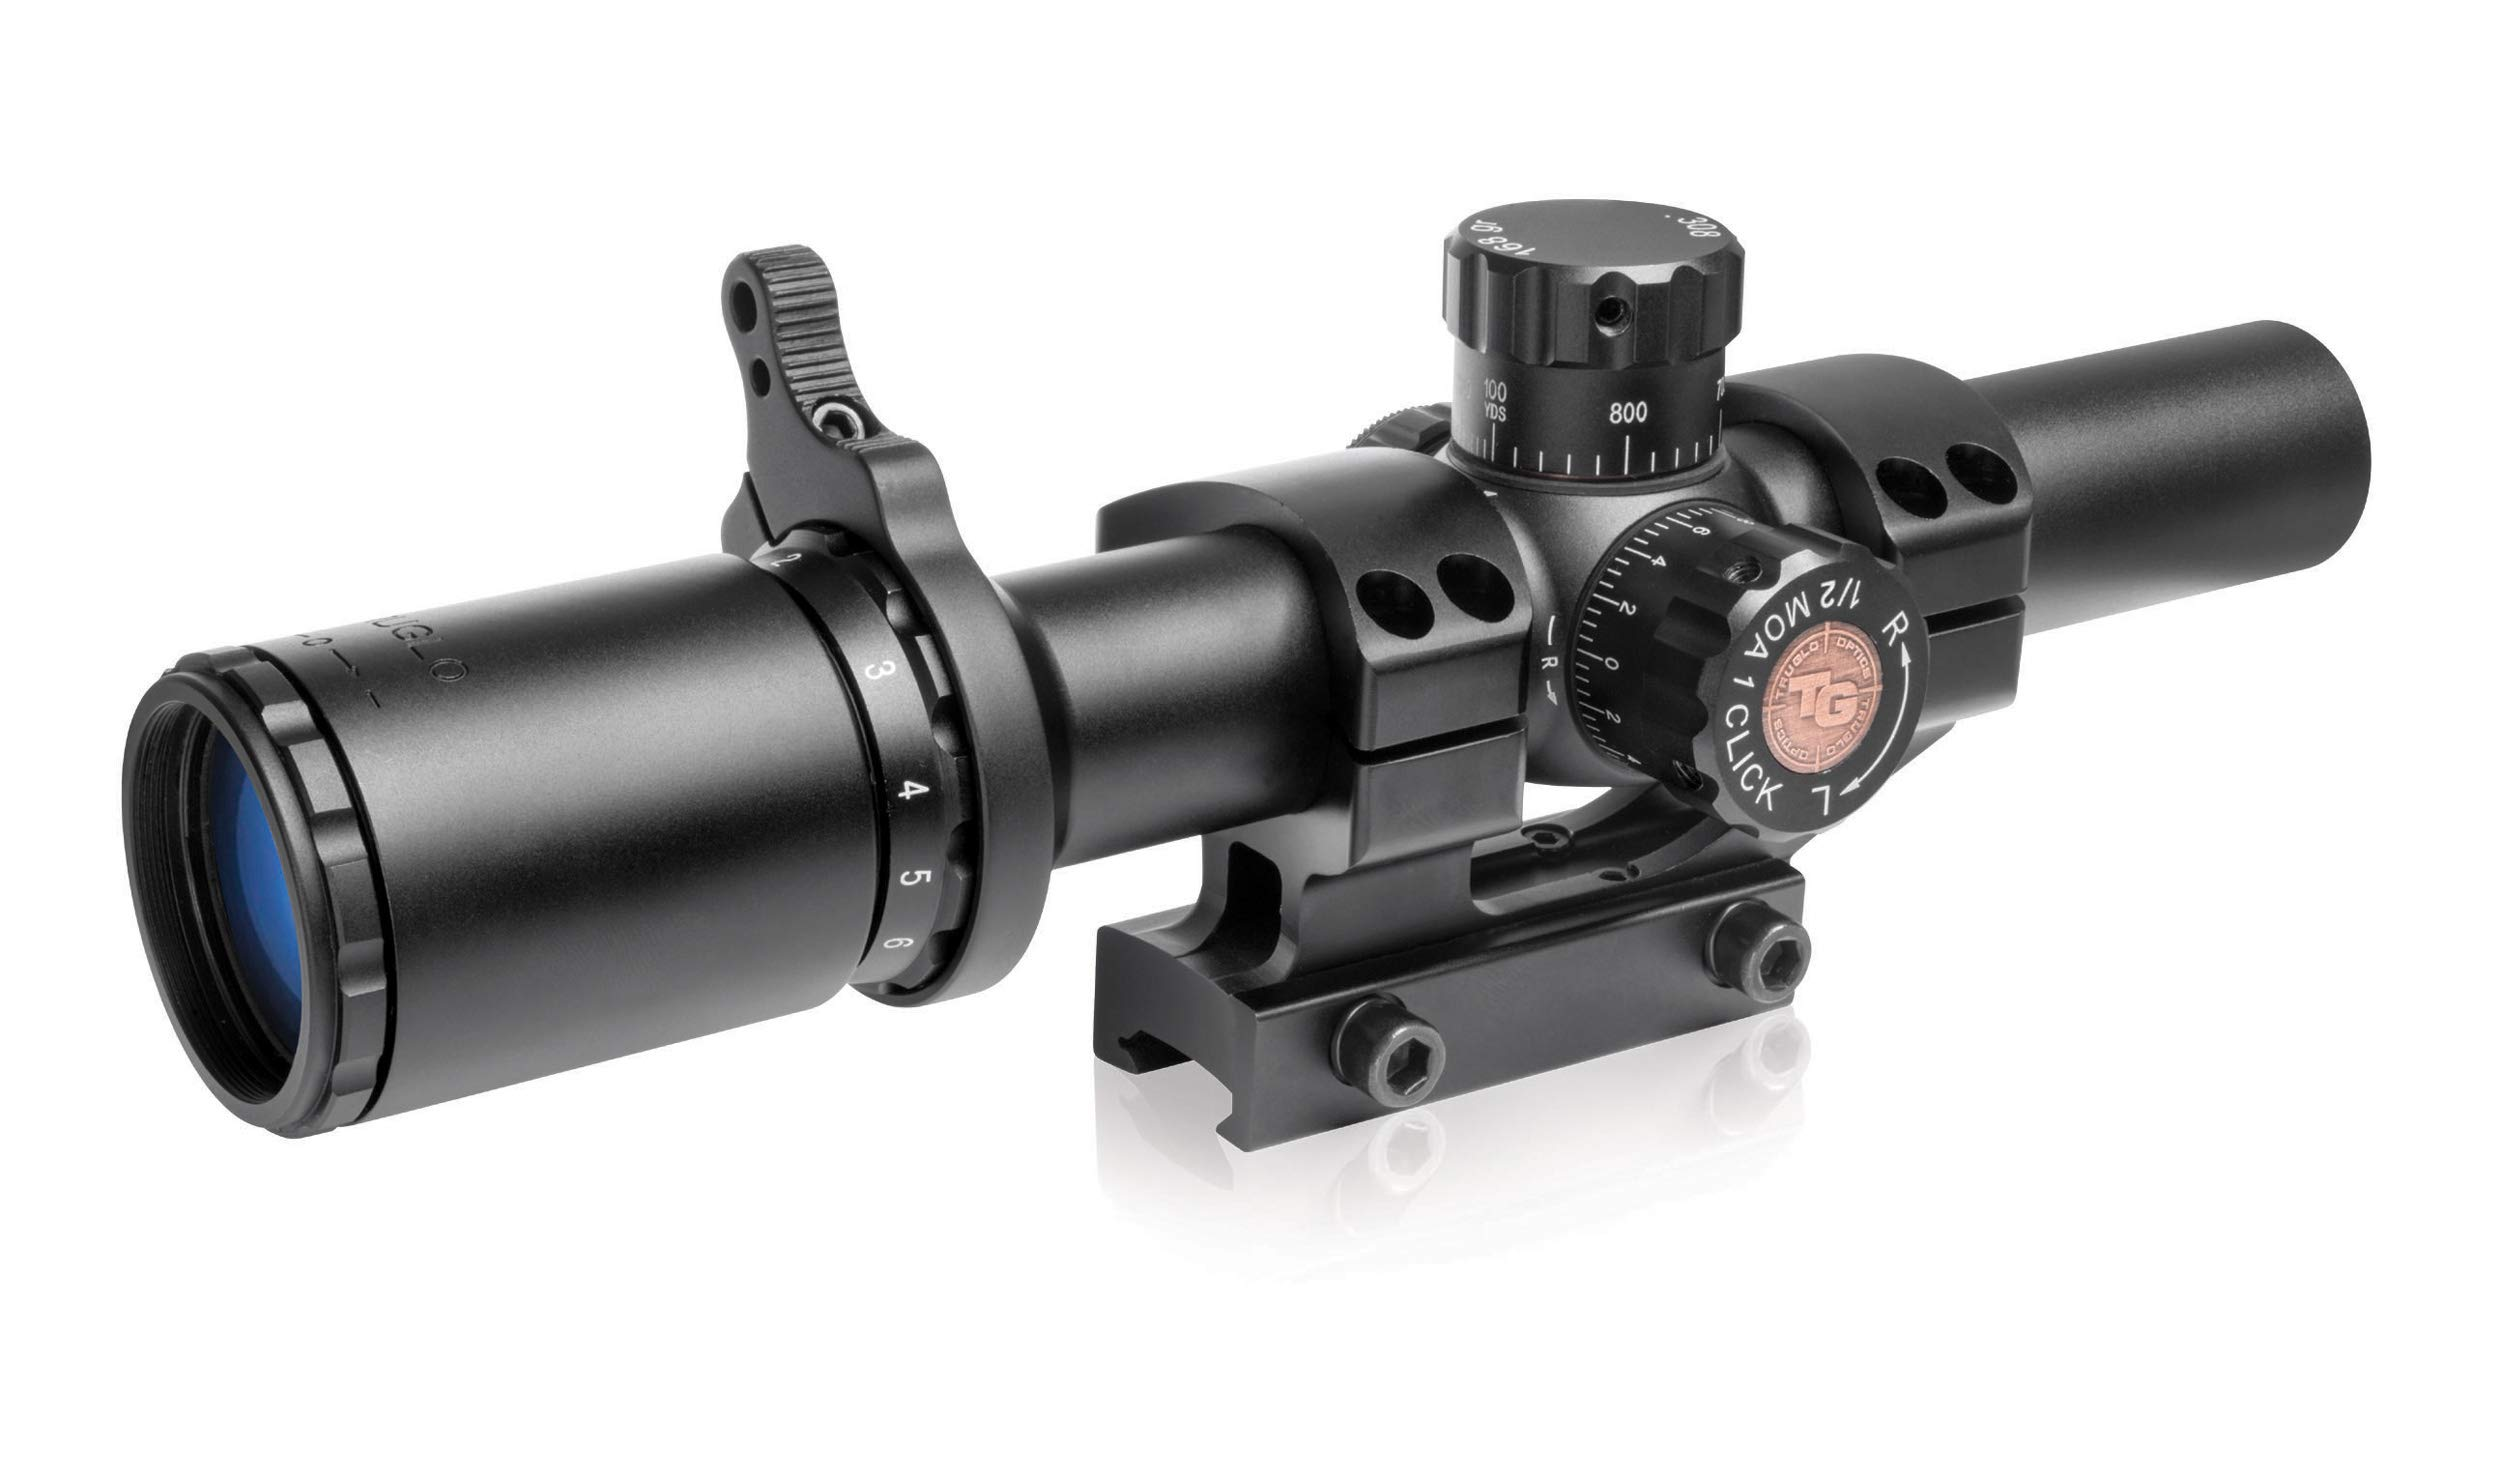 TRUGLO TRU-Brite 30 Series Illuminated Tactical Rifle Scope - Includes Scope Mount, 1-6 x 24mm by TRUGLO